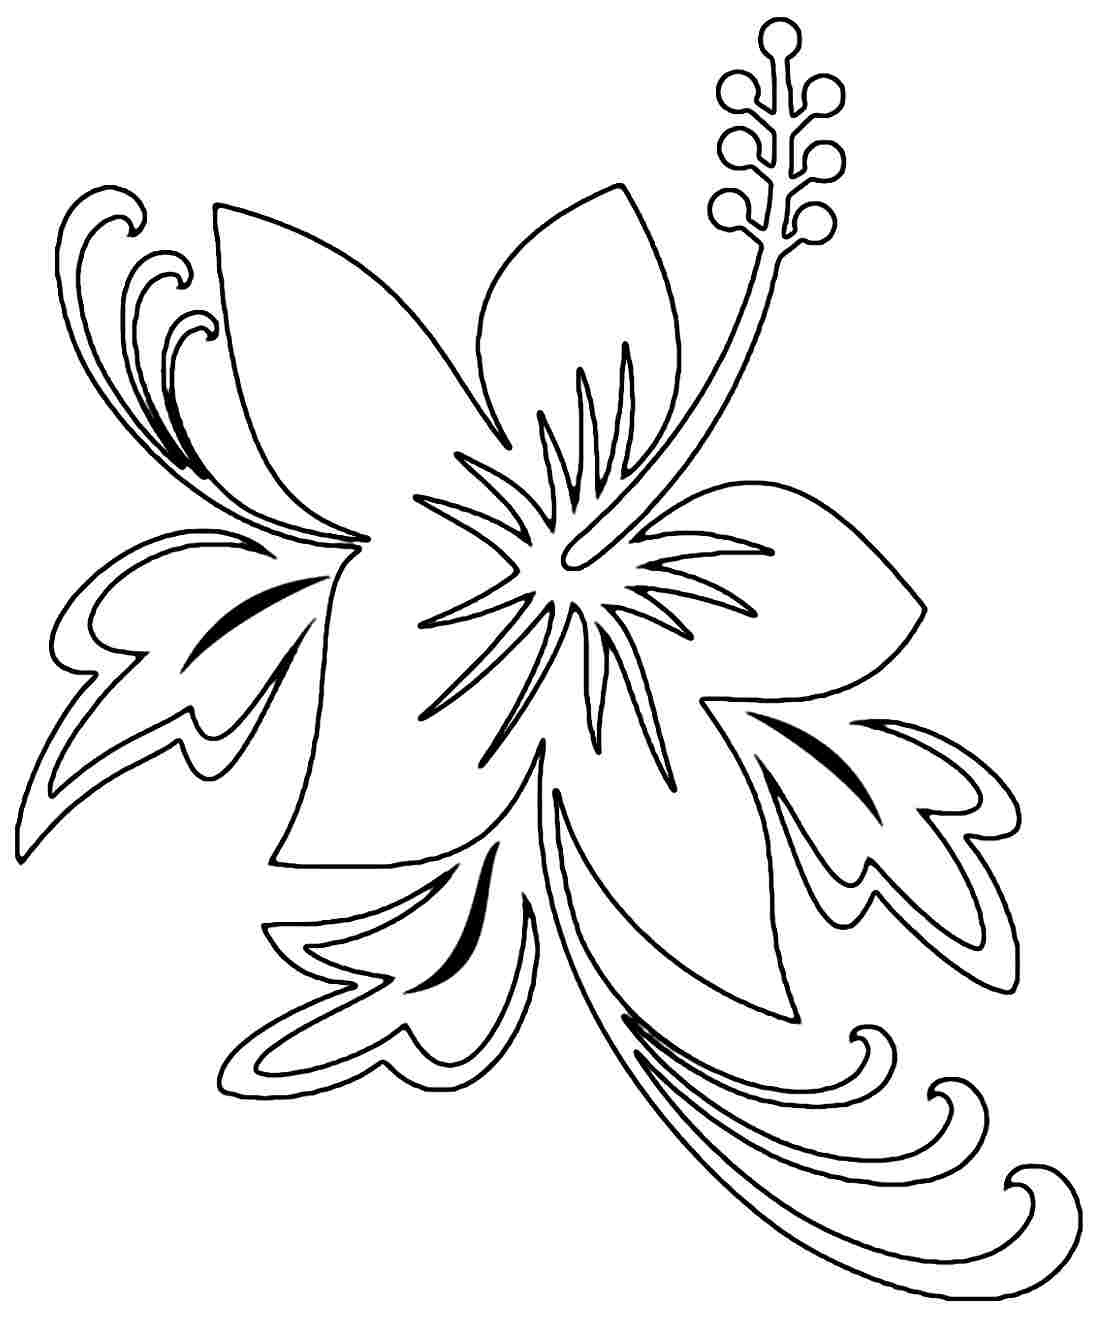 Free Printable Hibiscus Coloring Pages For Kids - Free Printable Hibiscus Coloring Pages